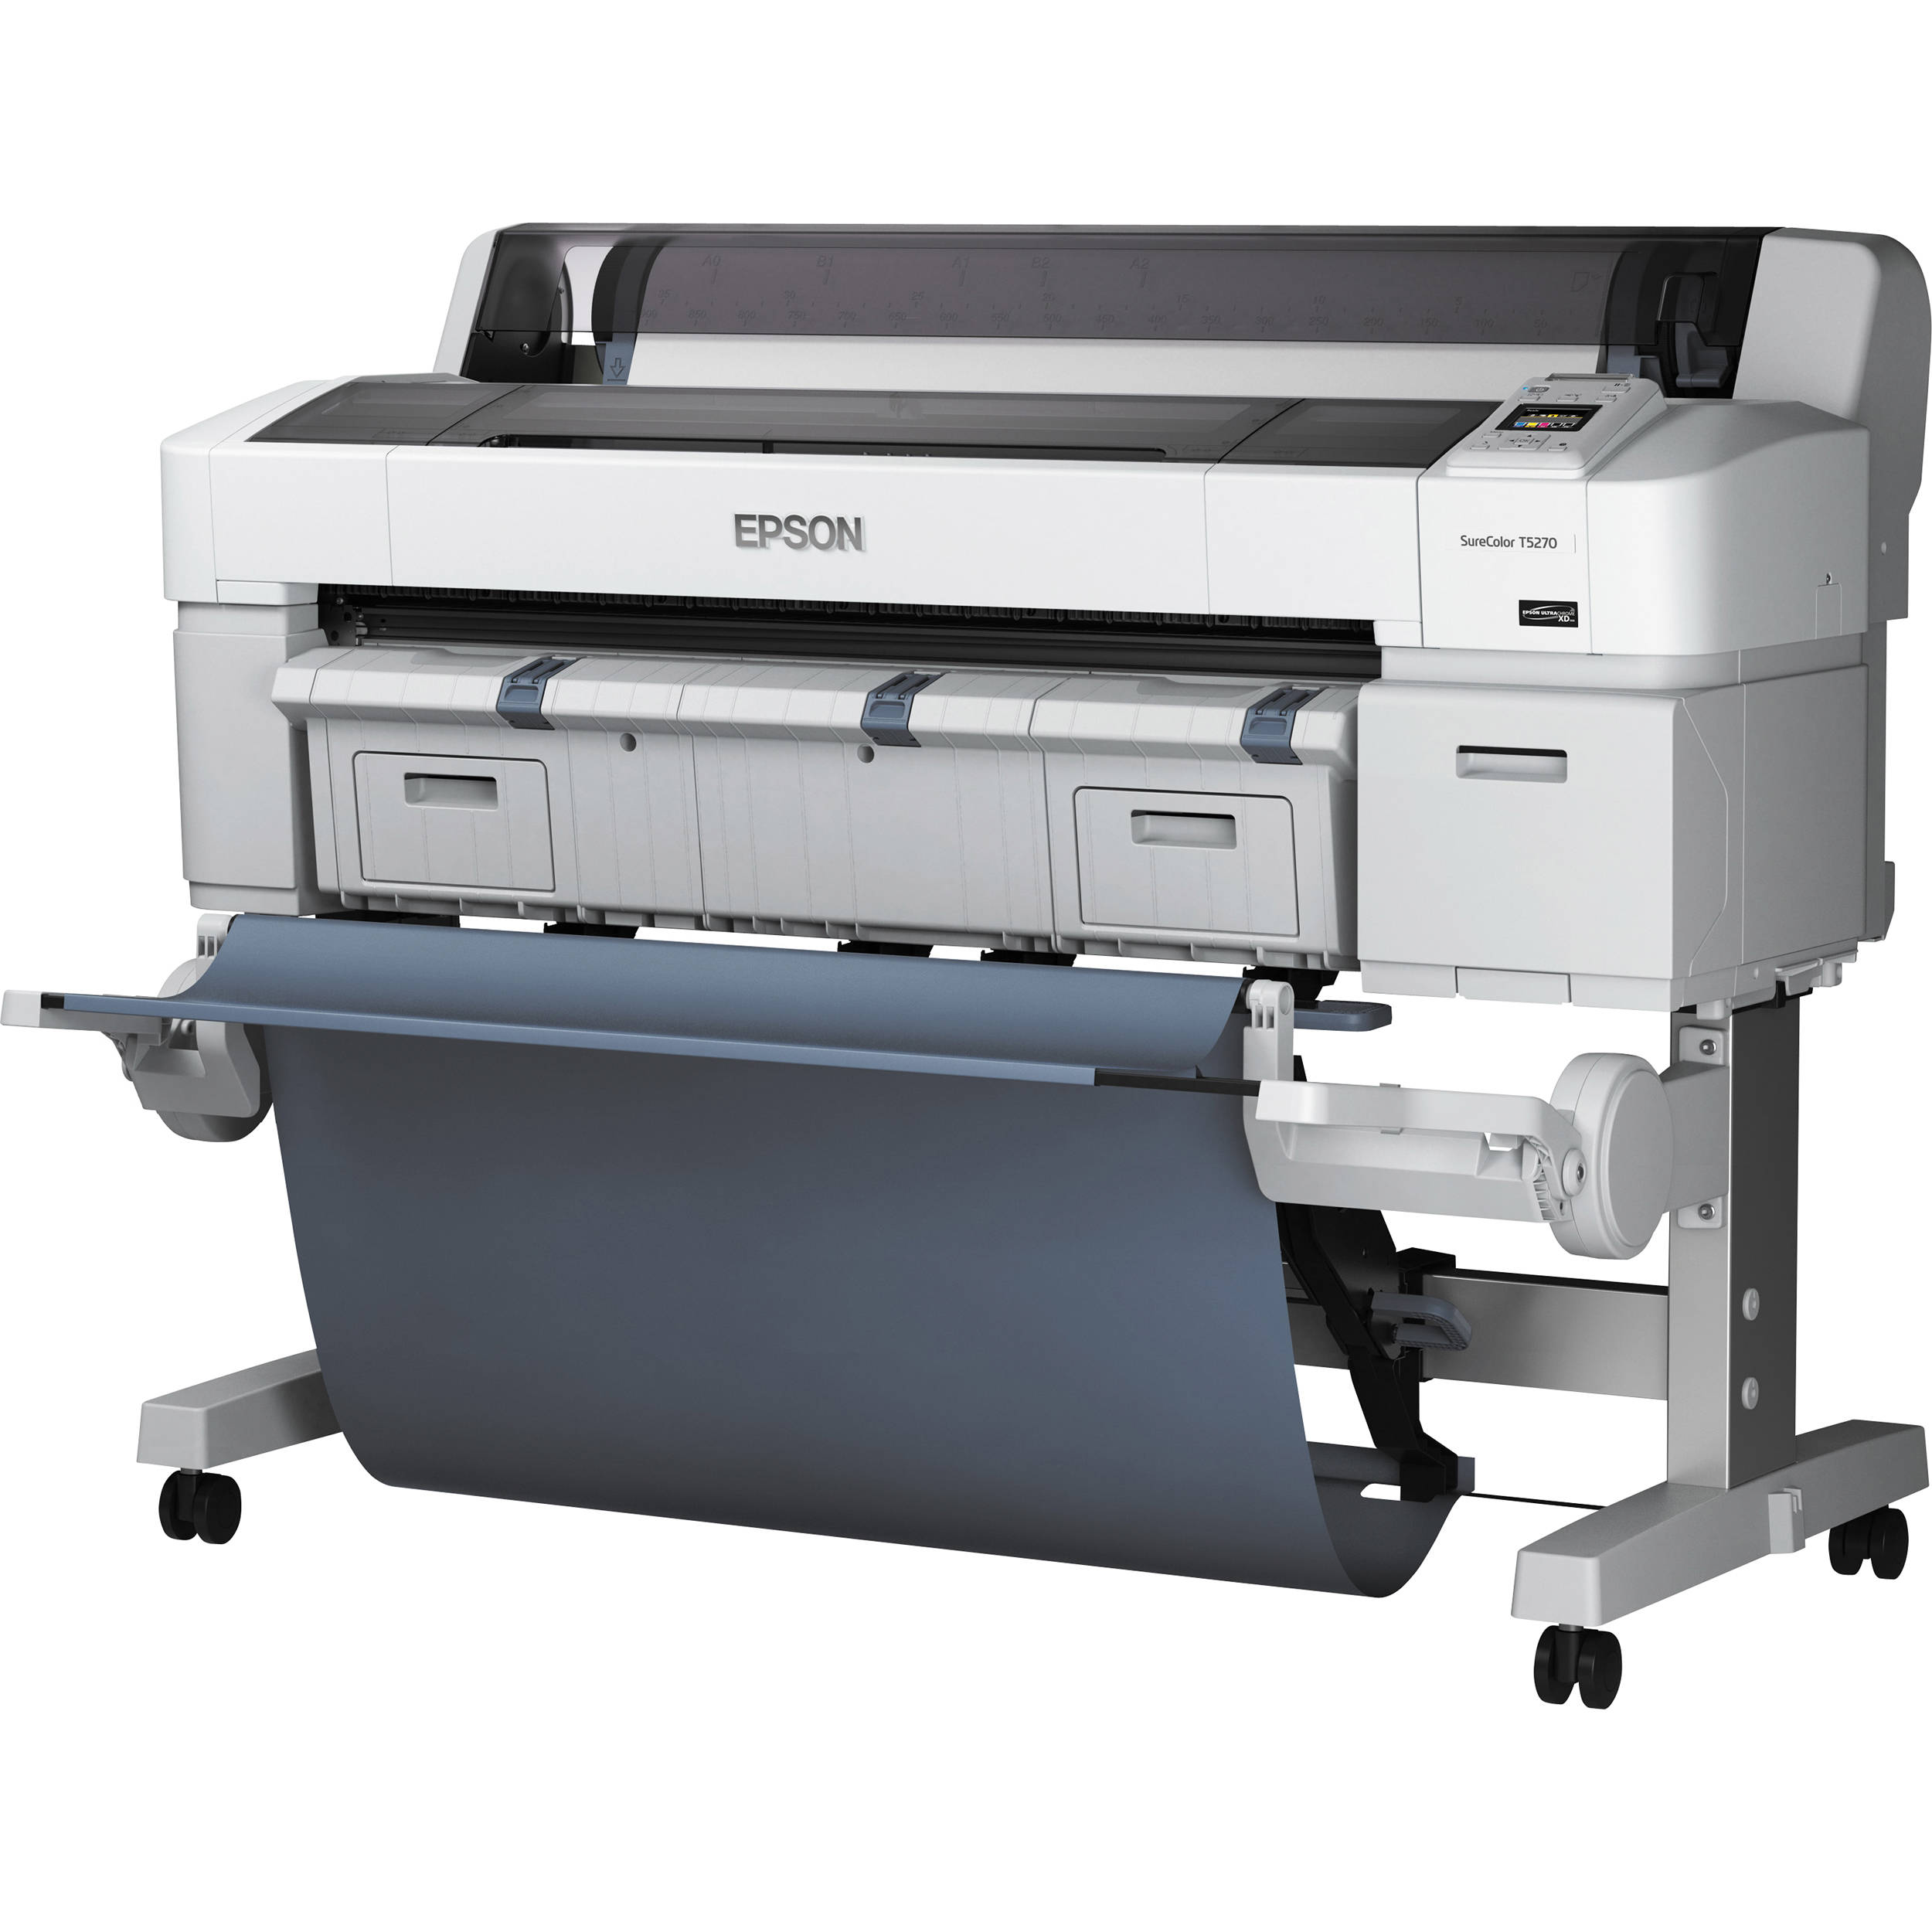 EPSON T5270 DRIVERS DOWNLOAD FREE